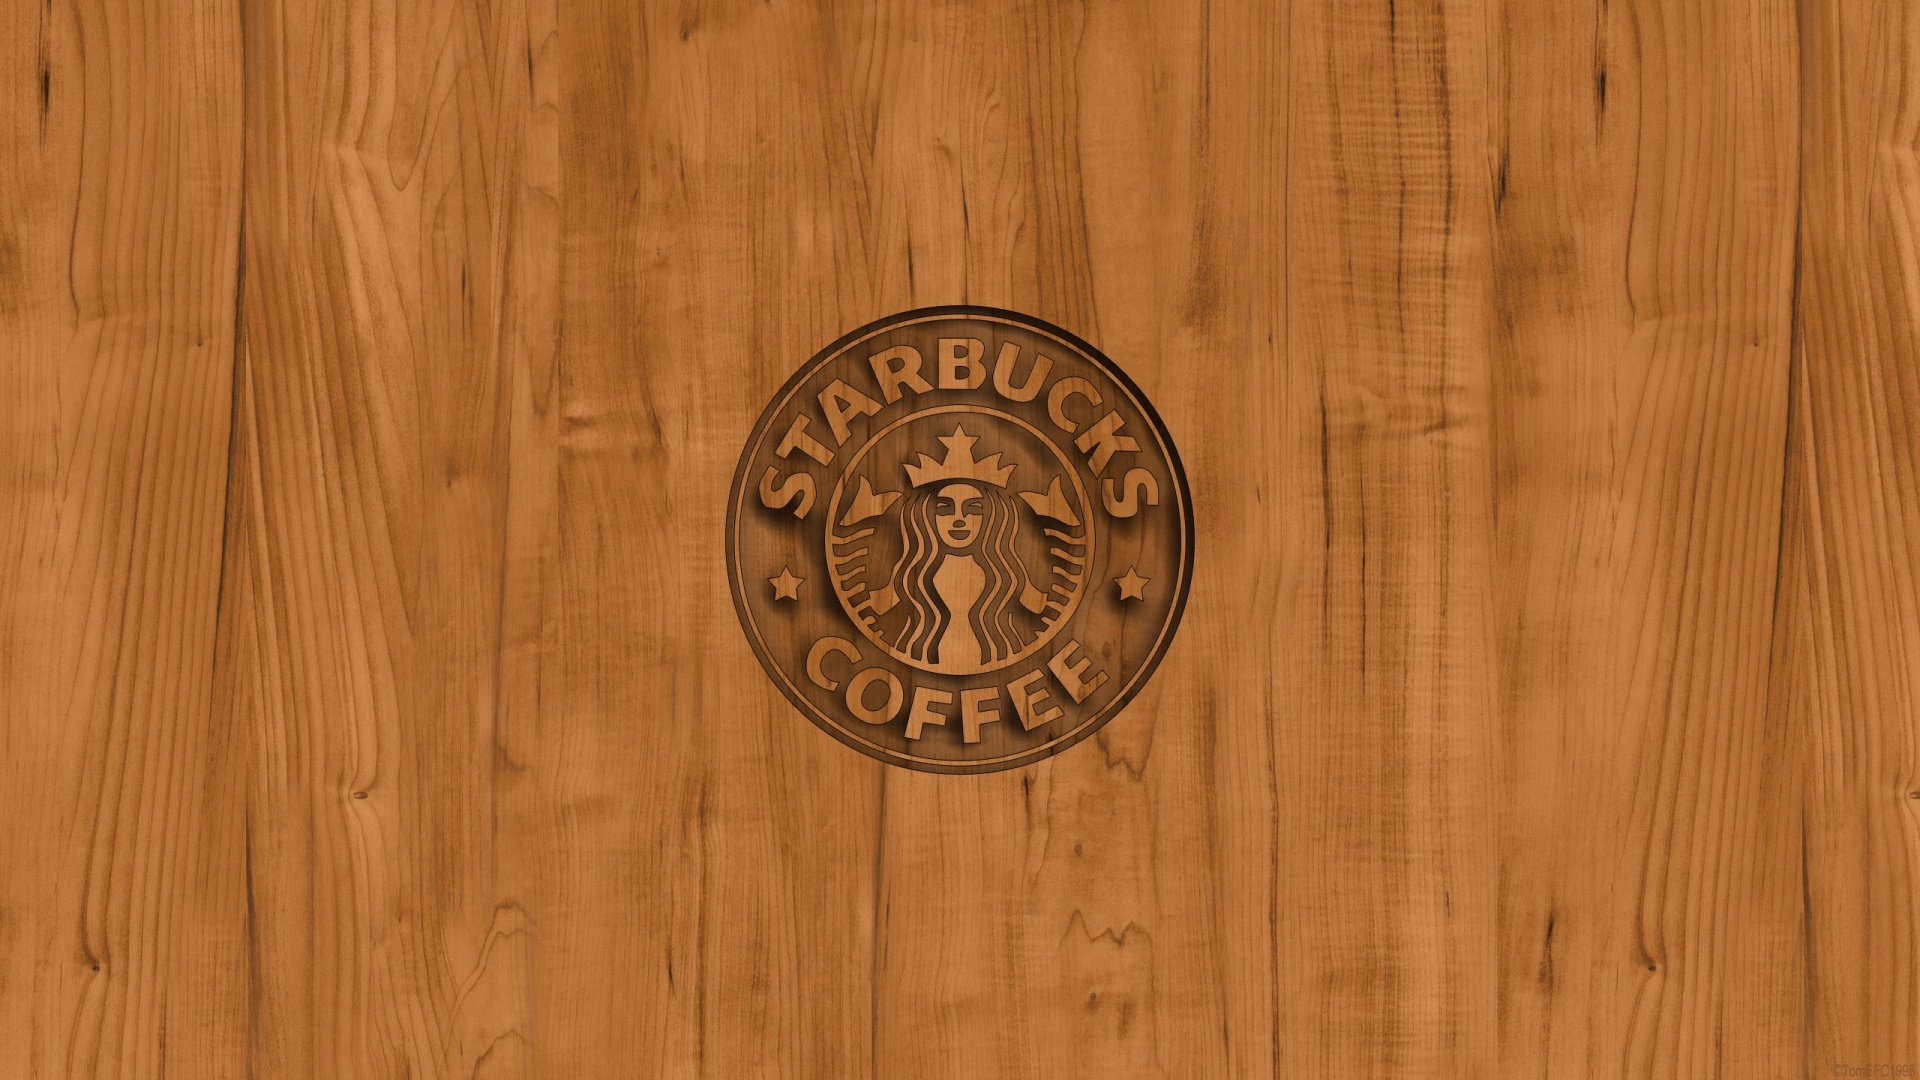 starbucks background information Company information  expect more than coffee to say starbucks purchases and roasts high-quality whole bean coffees is very true that's the essence of what we do.